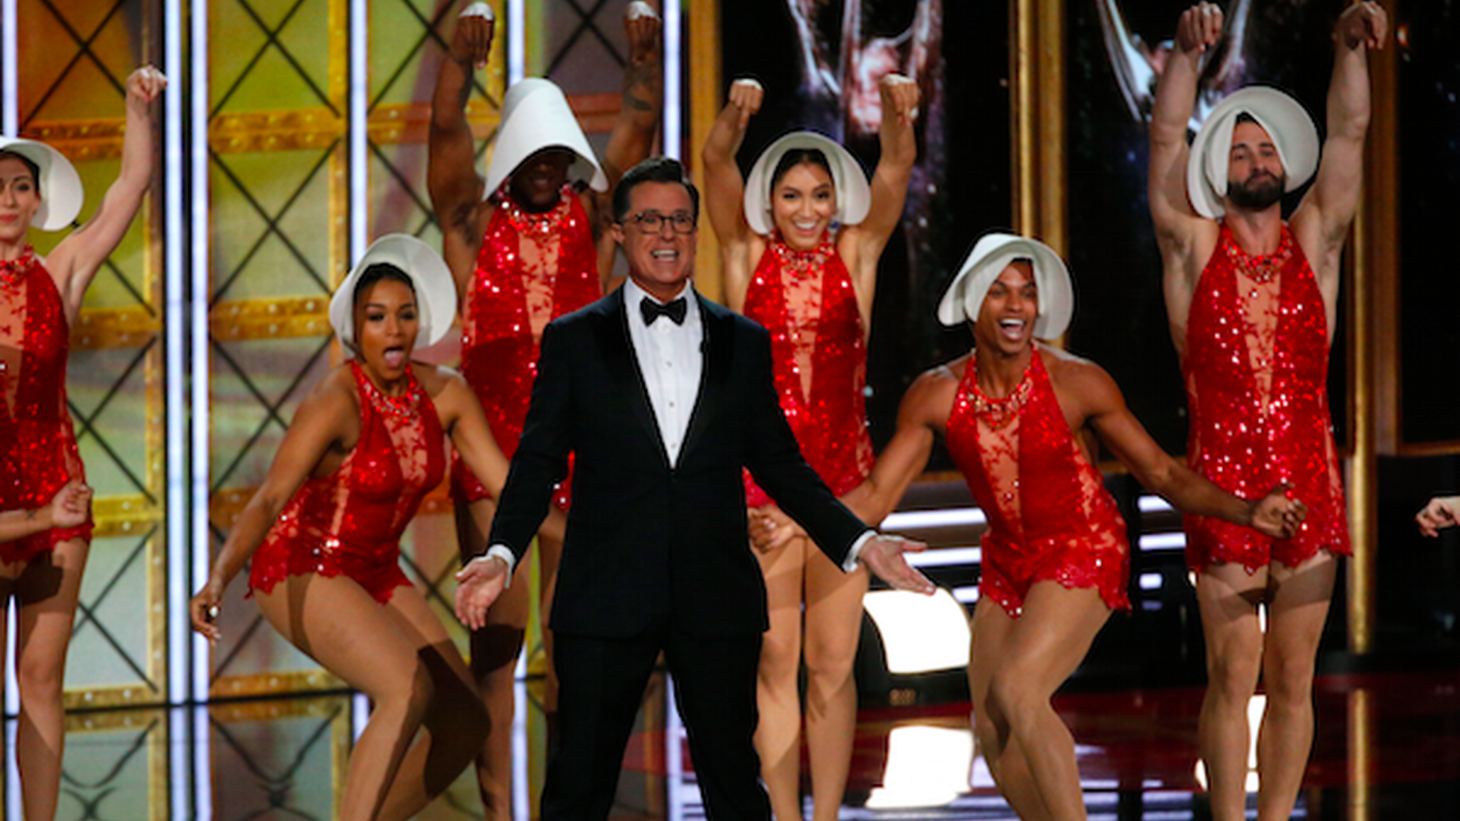 Stephen Colbert's opening monologue was full of Trump jabs, and Sean Spicer made an appearance. We get the highlights from last night's Emmys.